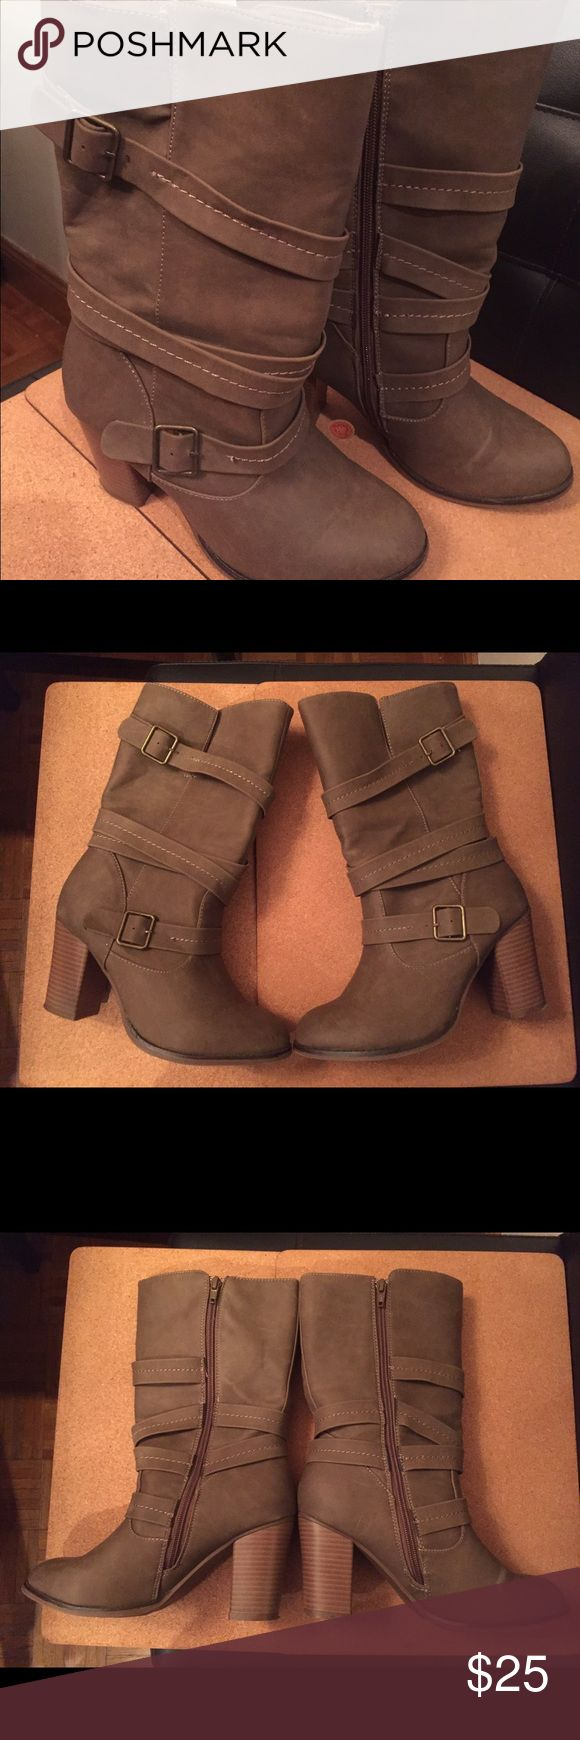 Woman's Beige Boots by Apt 9 Woman's Beige boots by Apt 9  Size 8 Apt. 9 Shoes Heeled Boots